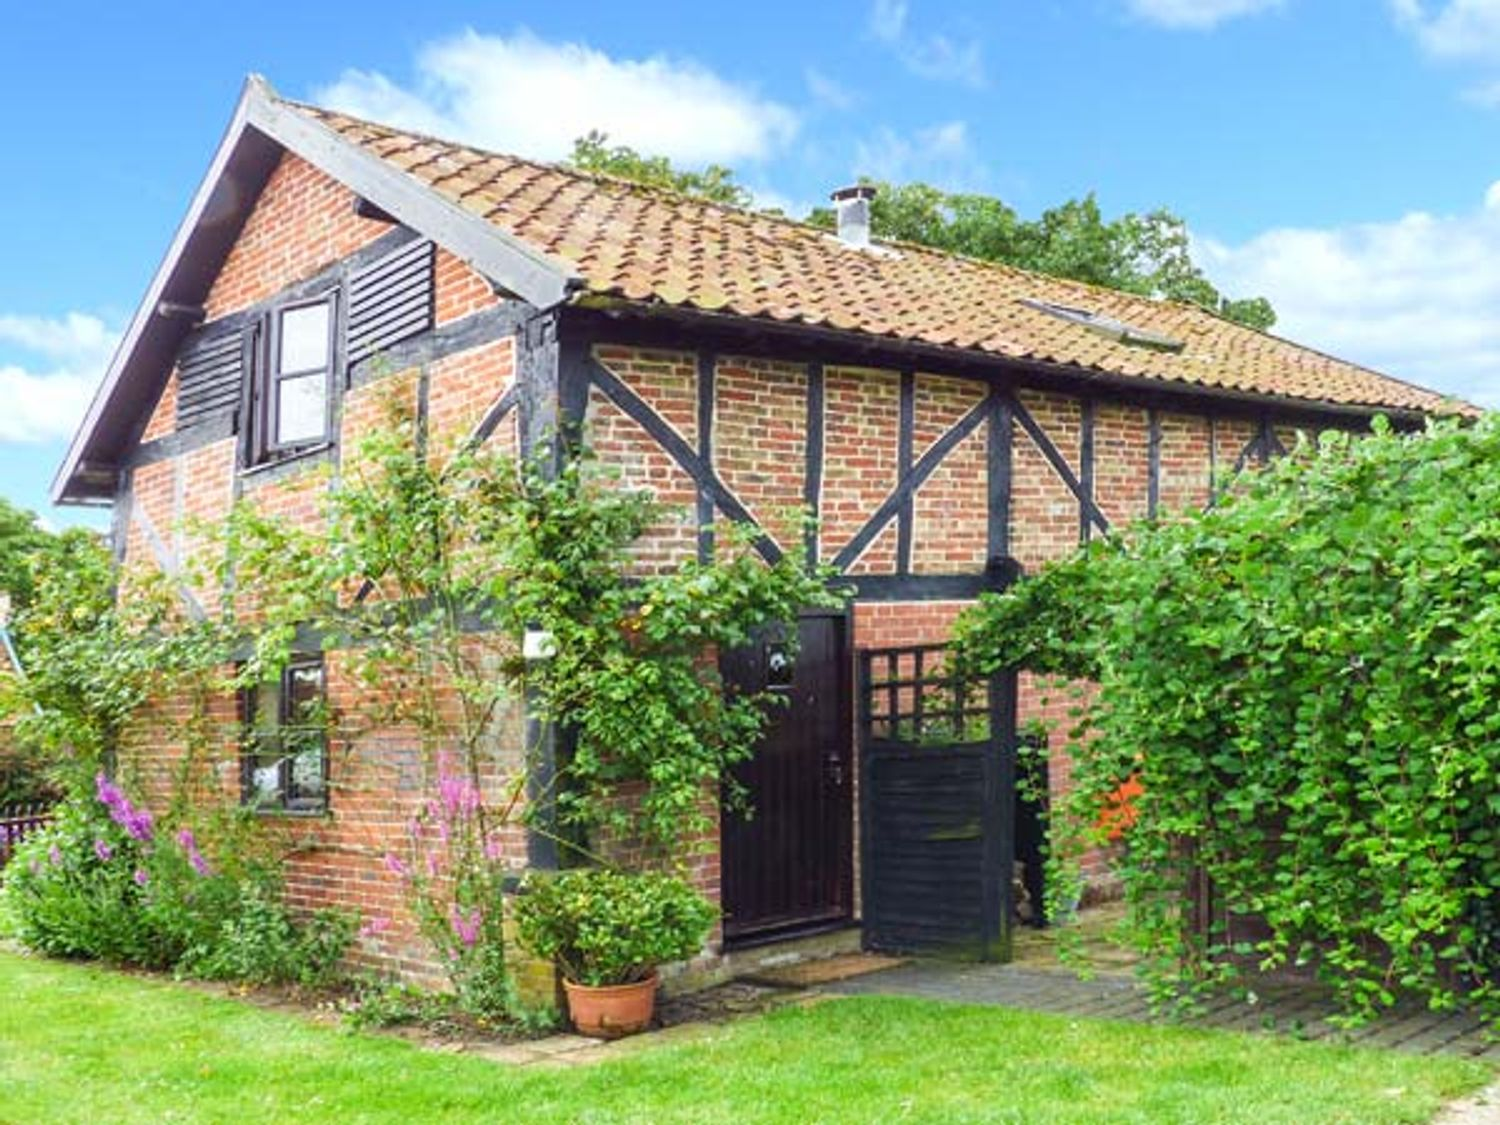 Holiday Cottages in Norfolk: The Granary, Hingham| Sykes Cottages